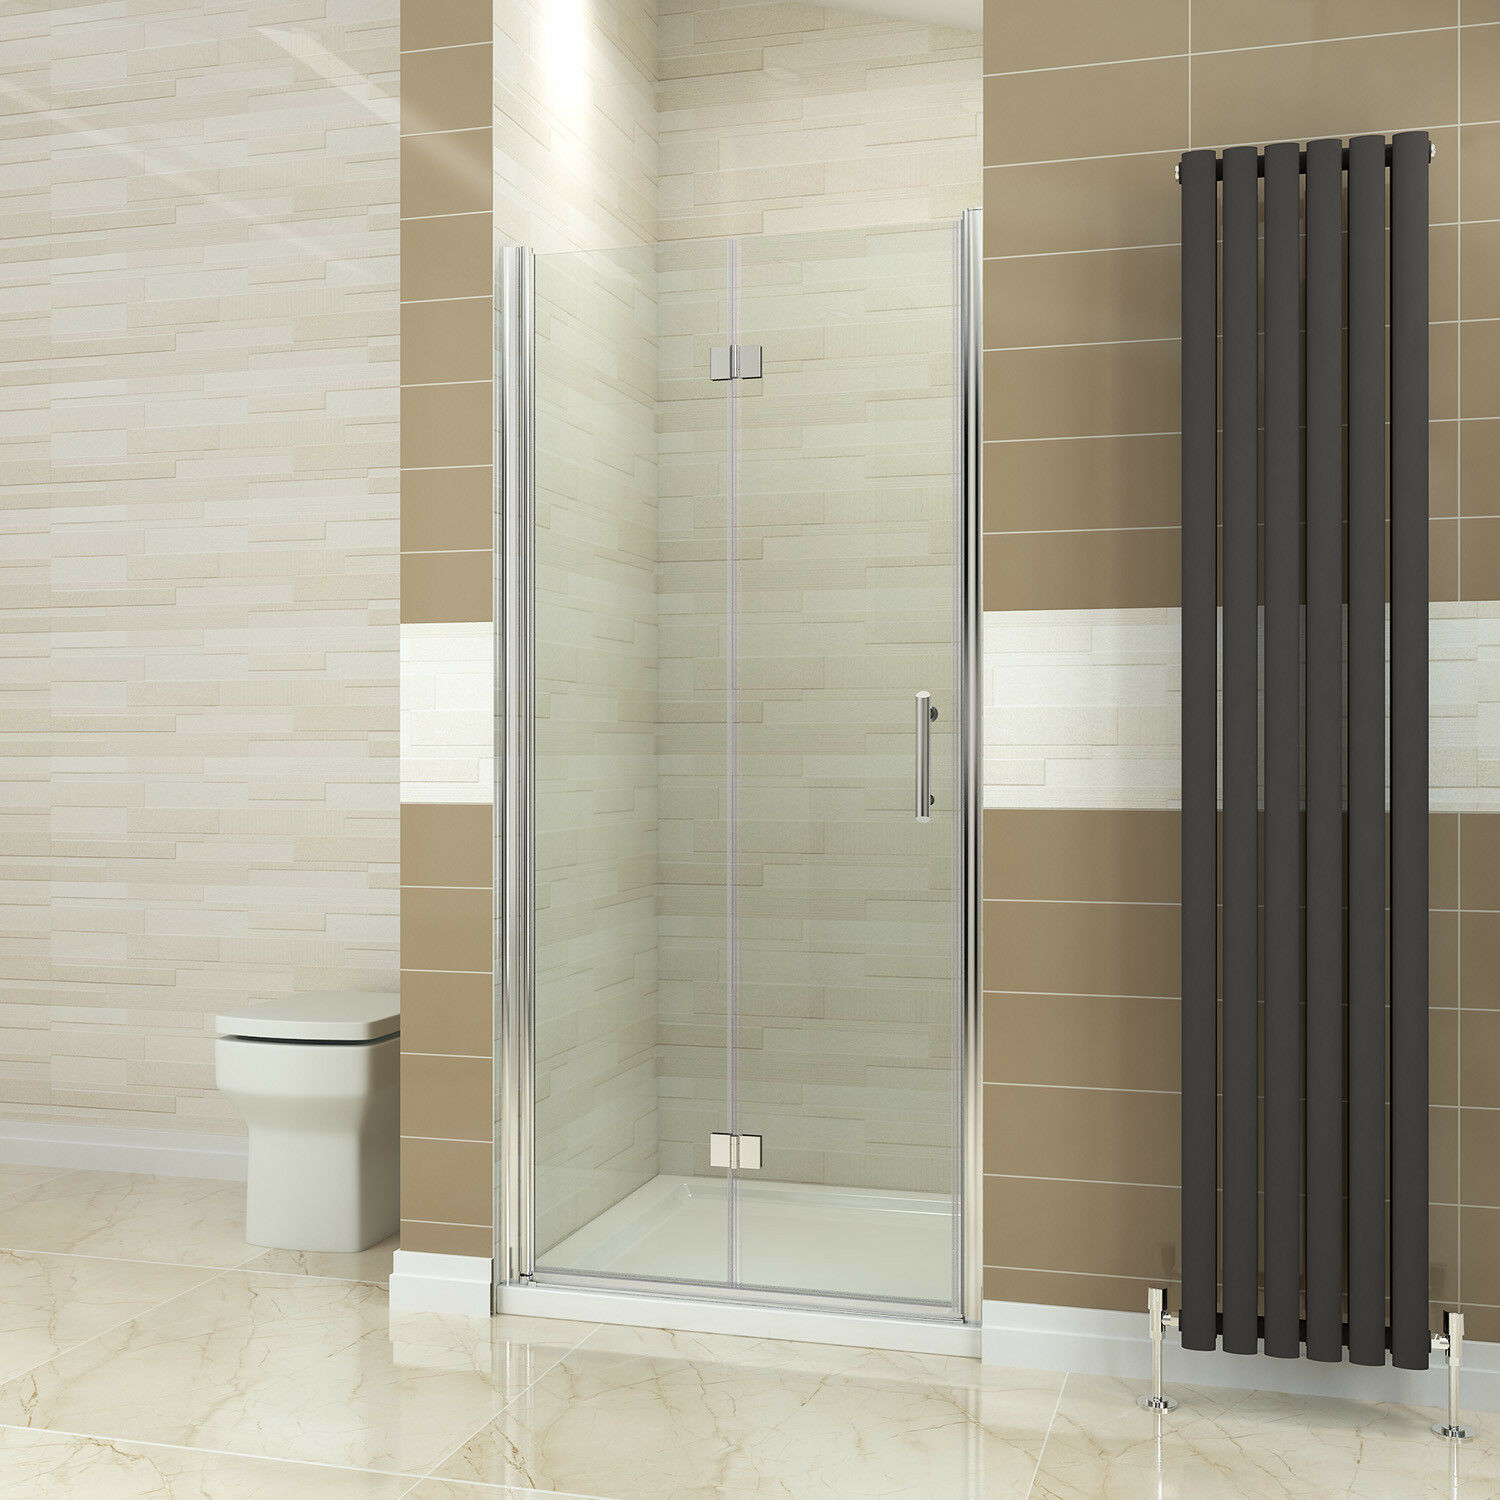 Frameless Pivot Door Shower Enclosure Tray Hinges Cubicle 6mm Glass Screen Waste 1400x800mm 800